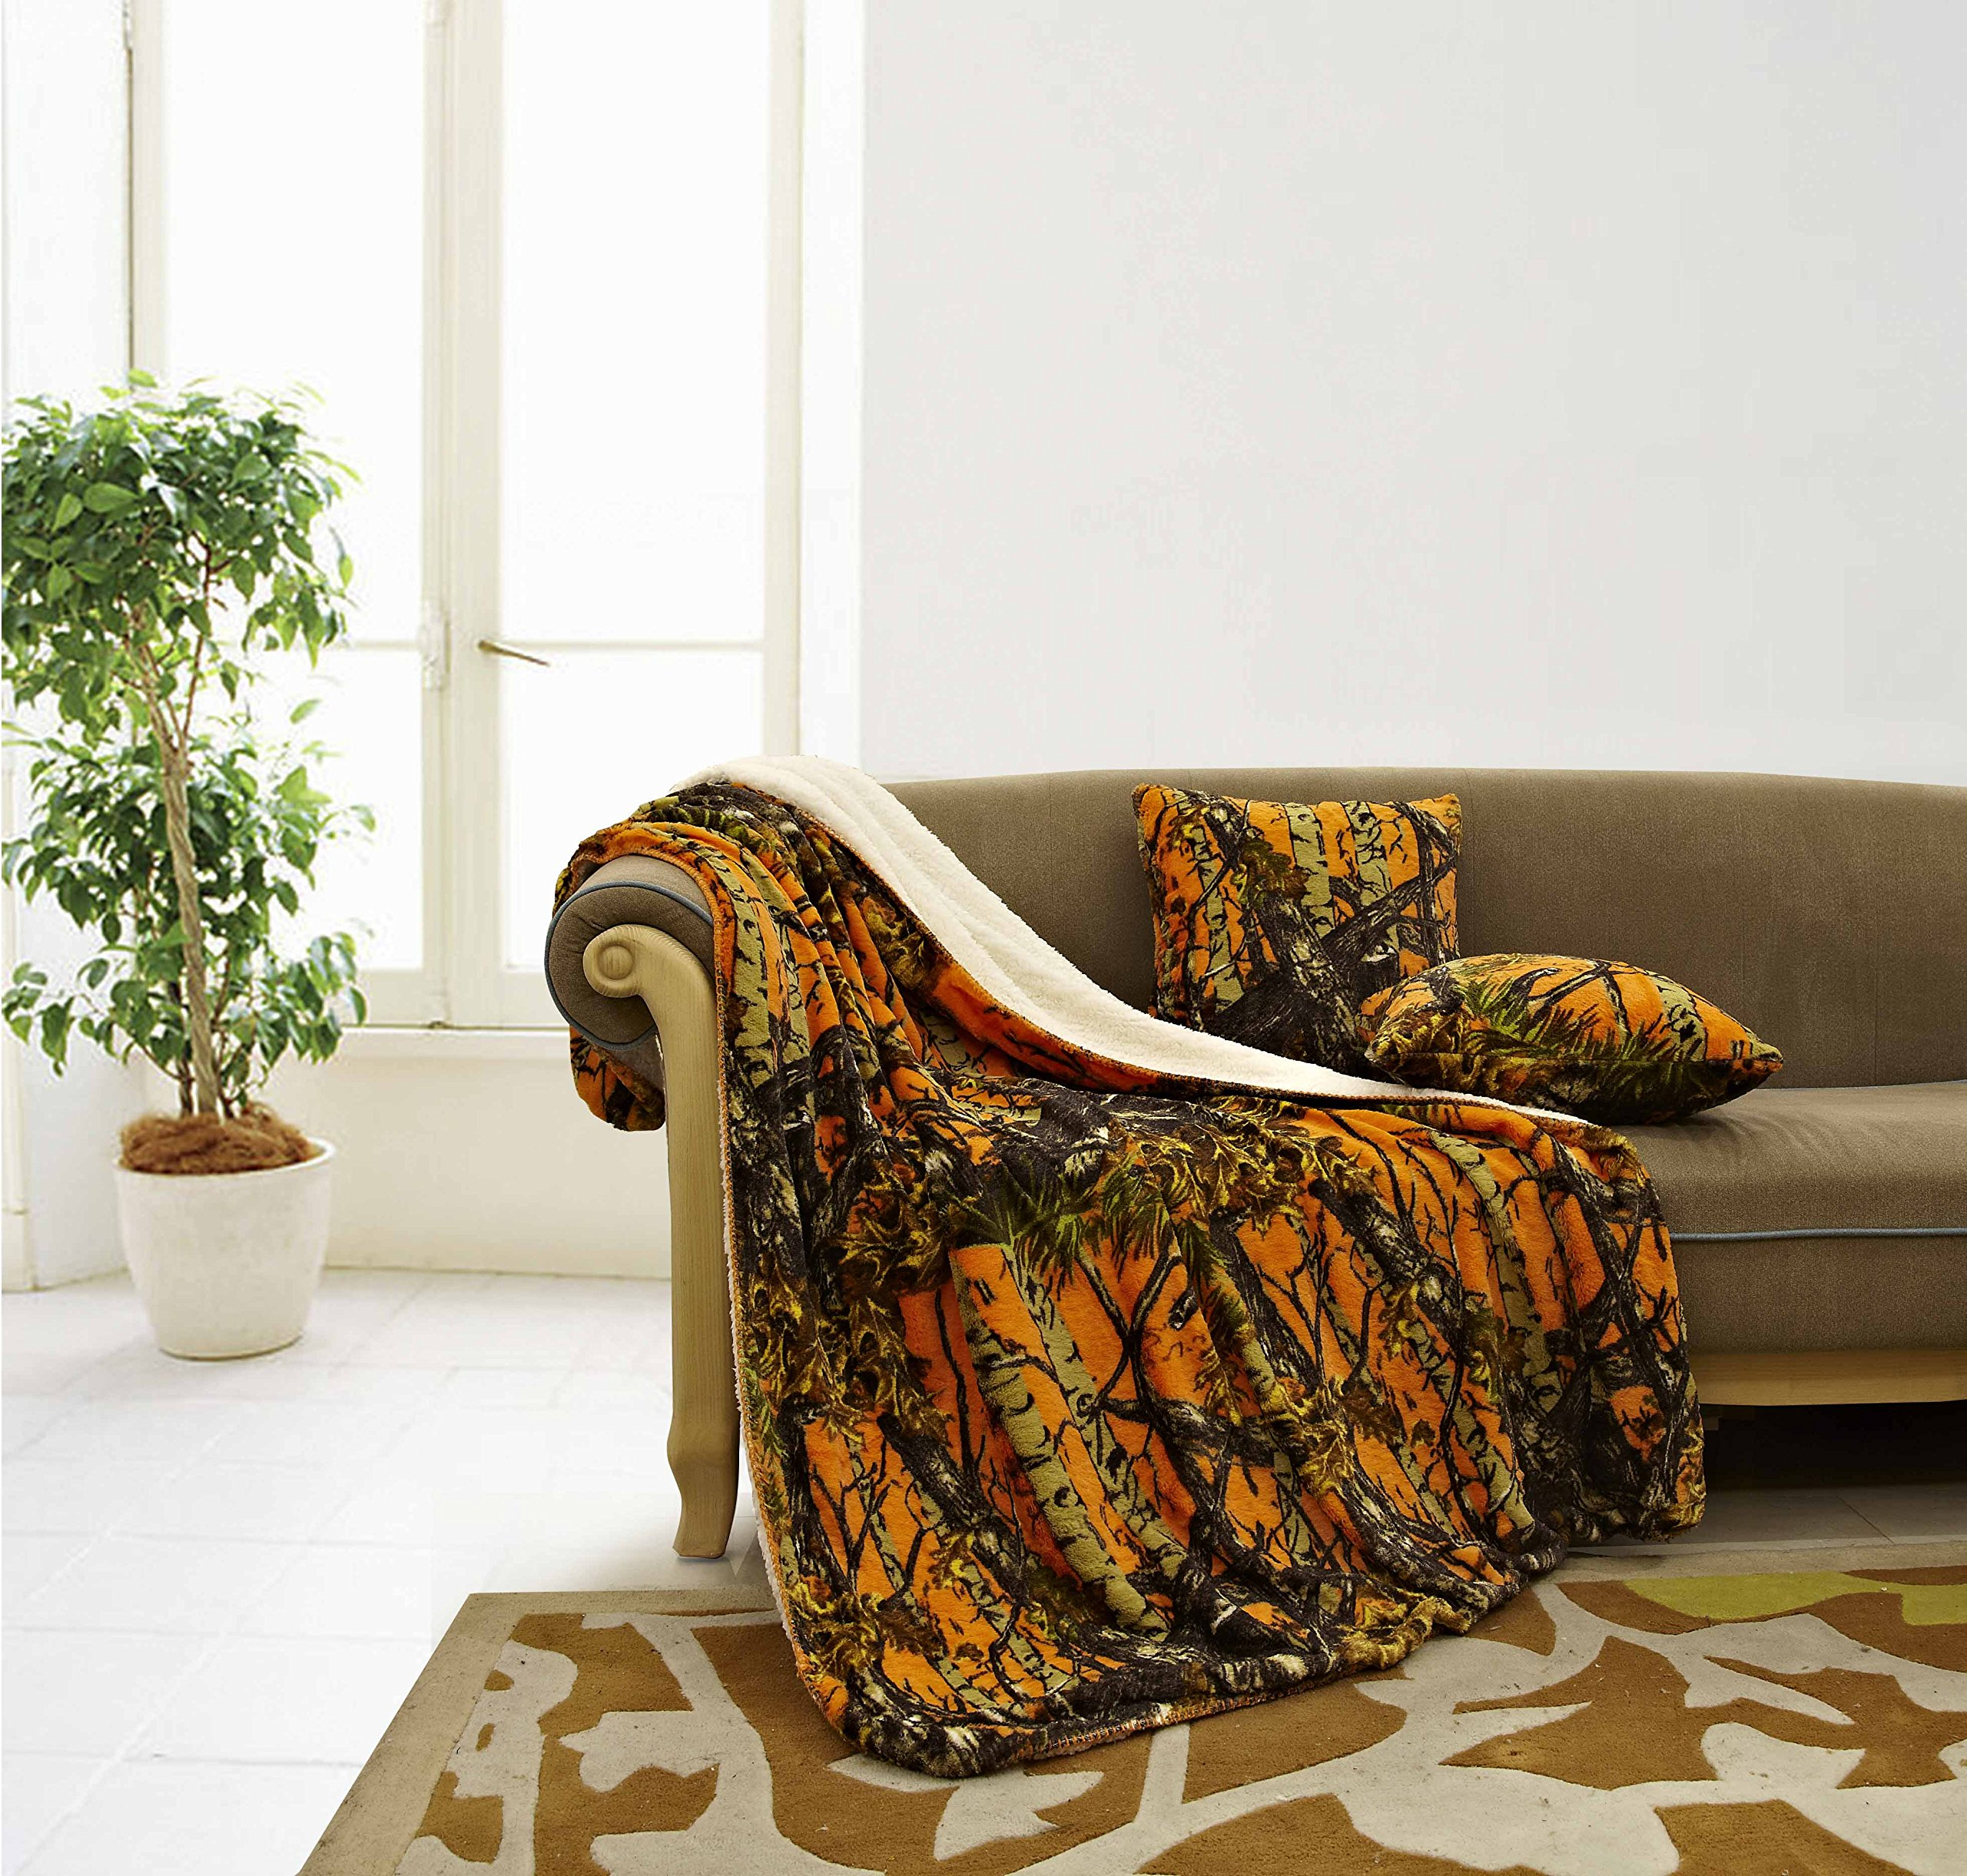 The Woods Luxury 3pc Set Orange Sherpa 50''x70'' Fleece Blanket and 18''x18'' Plush Throw Pillows by Regal Comfort Home Collection - Siesta Throw Blankets with 2pc Decorative Pillows For Sofas and Couches